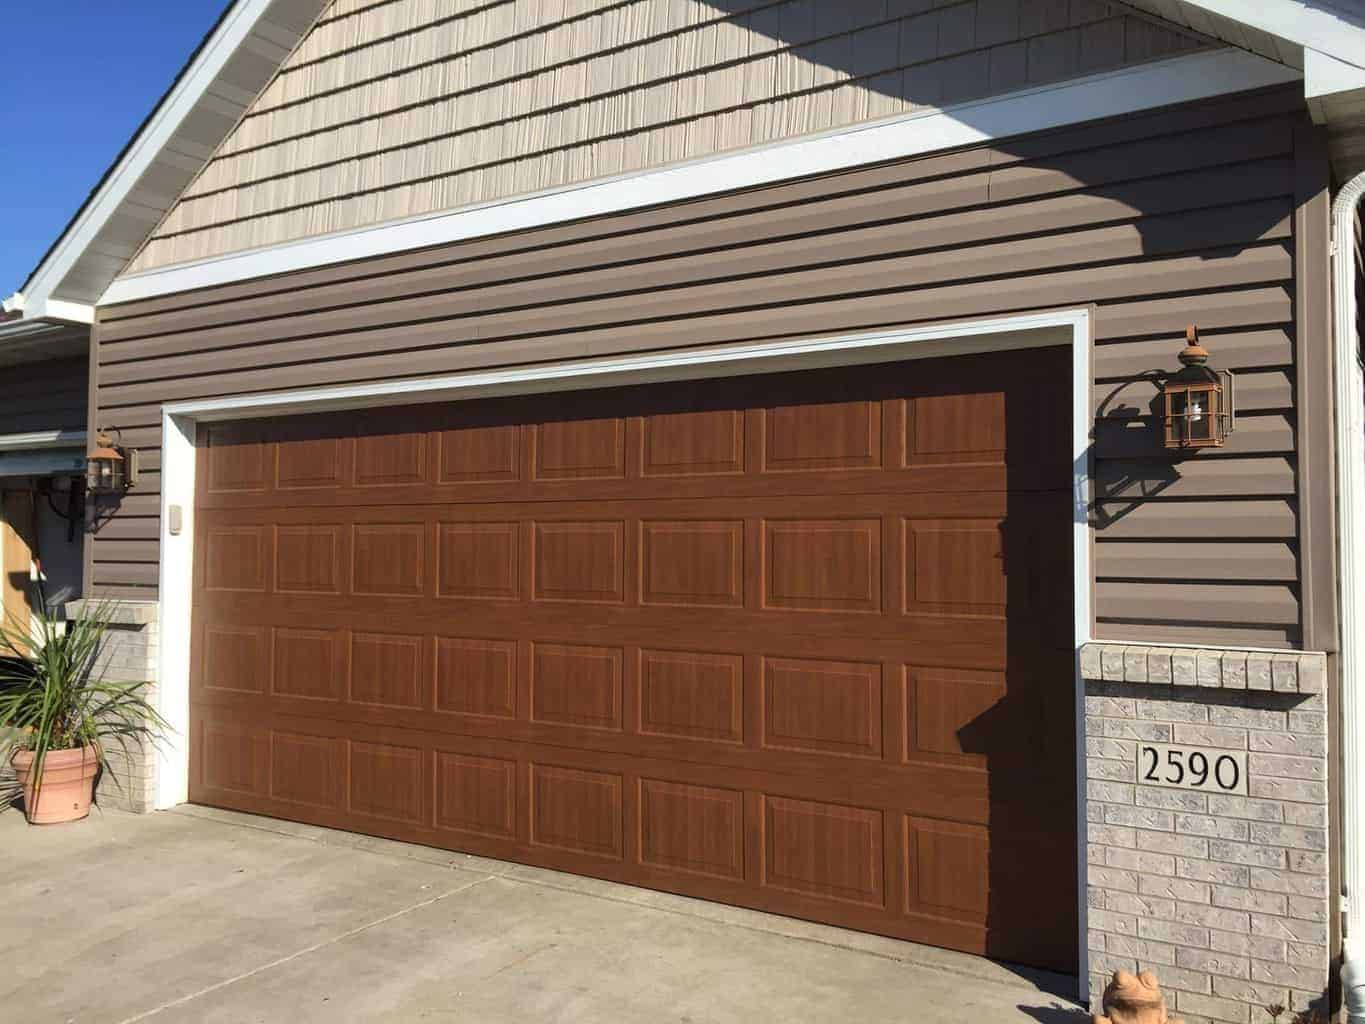 Doors To Garage: Overhead Doors For Business, Garage Doors For Home